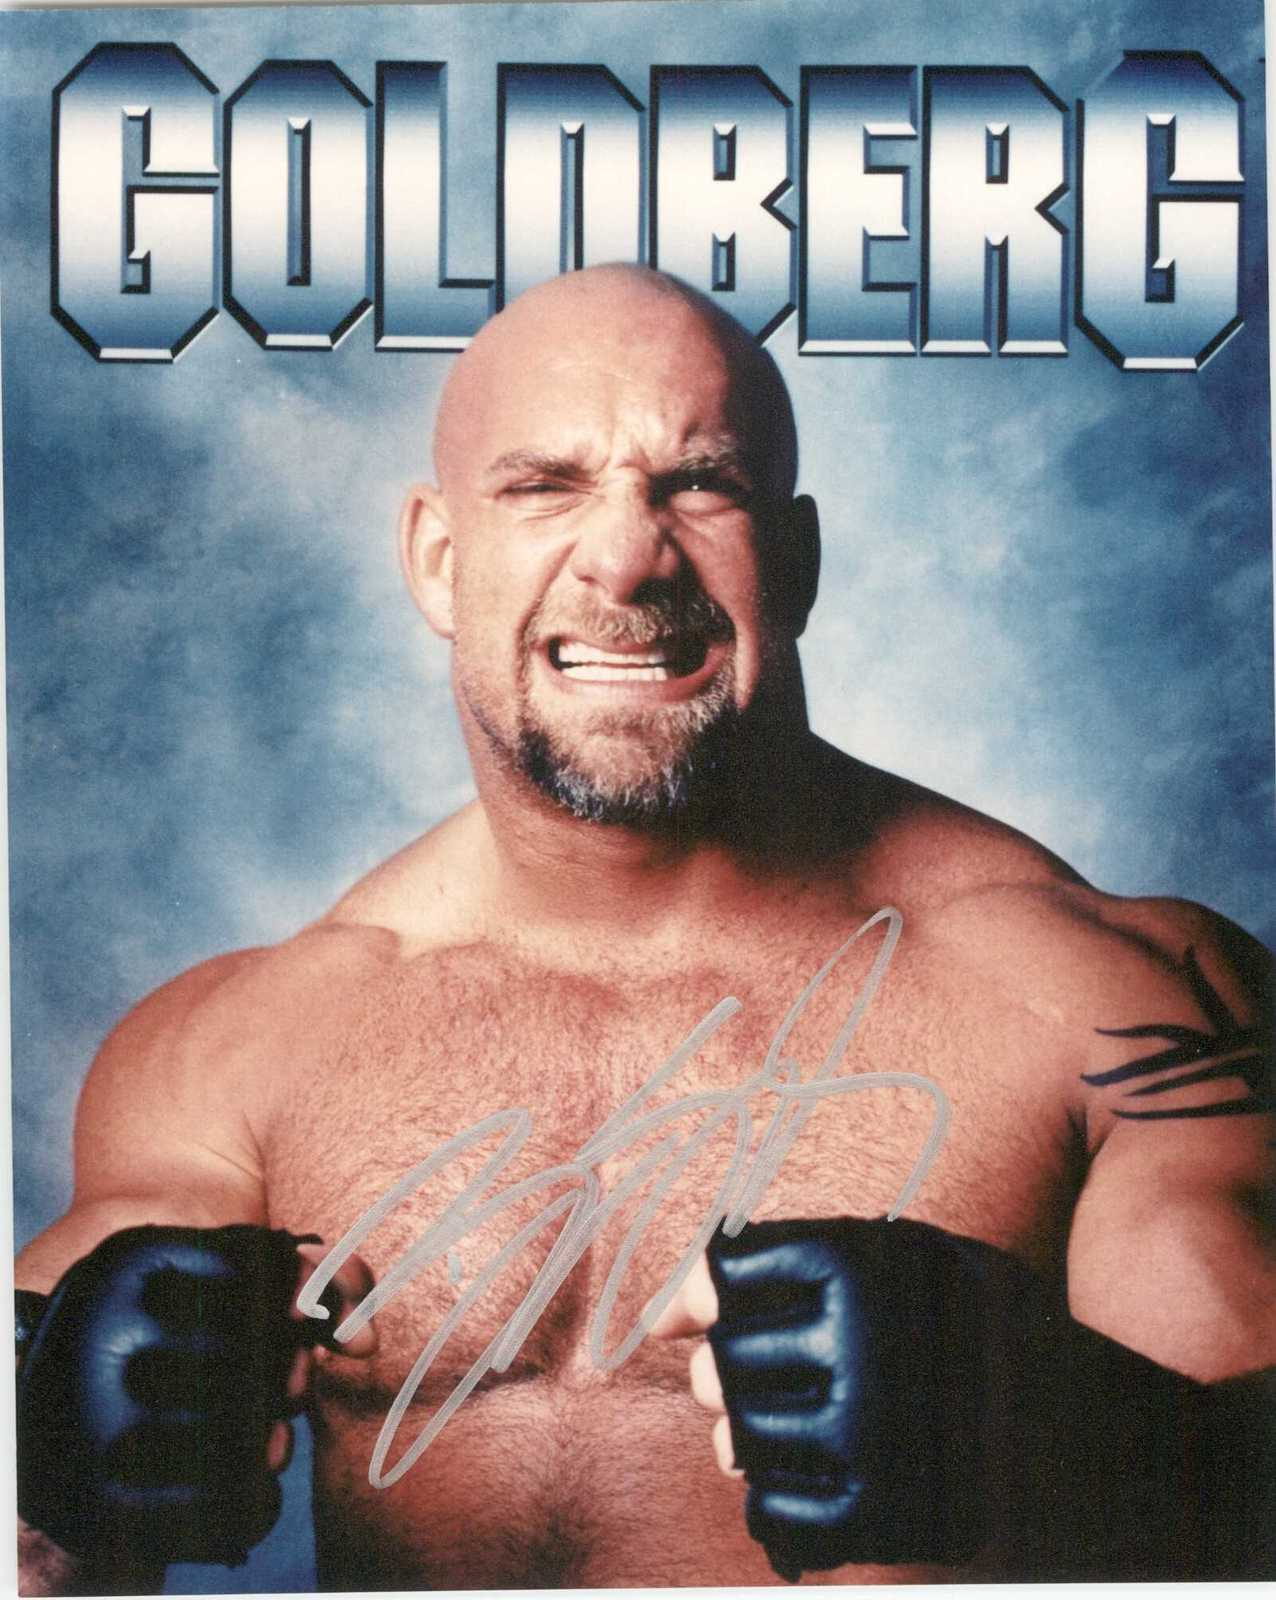 Primary image for Bill Goldberg Signed Autographed Glossy 8x10 Photo